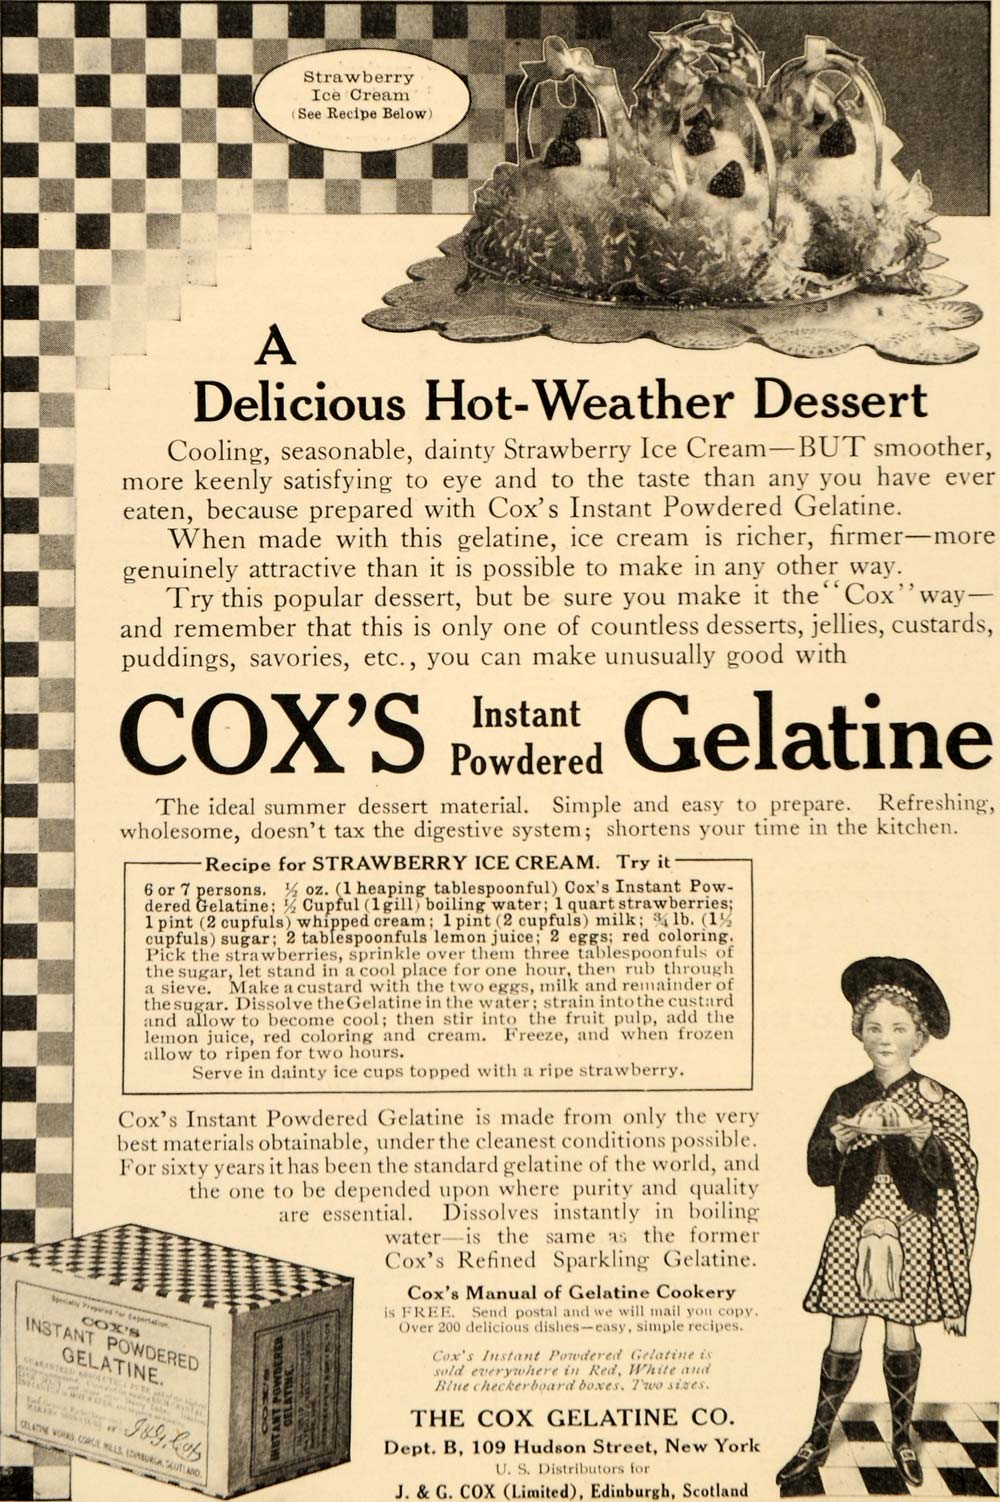 1910 Ad Coxs Instant Powdered Gelatine Ice Cream Recipe - ORIGINAL OD3